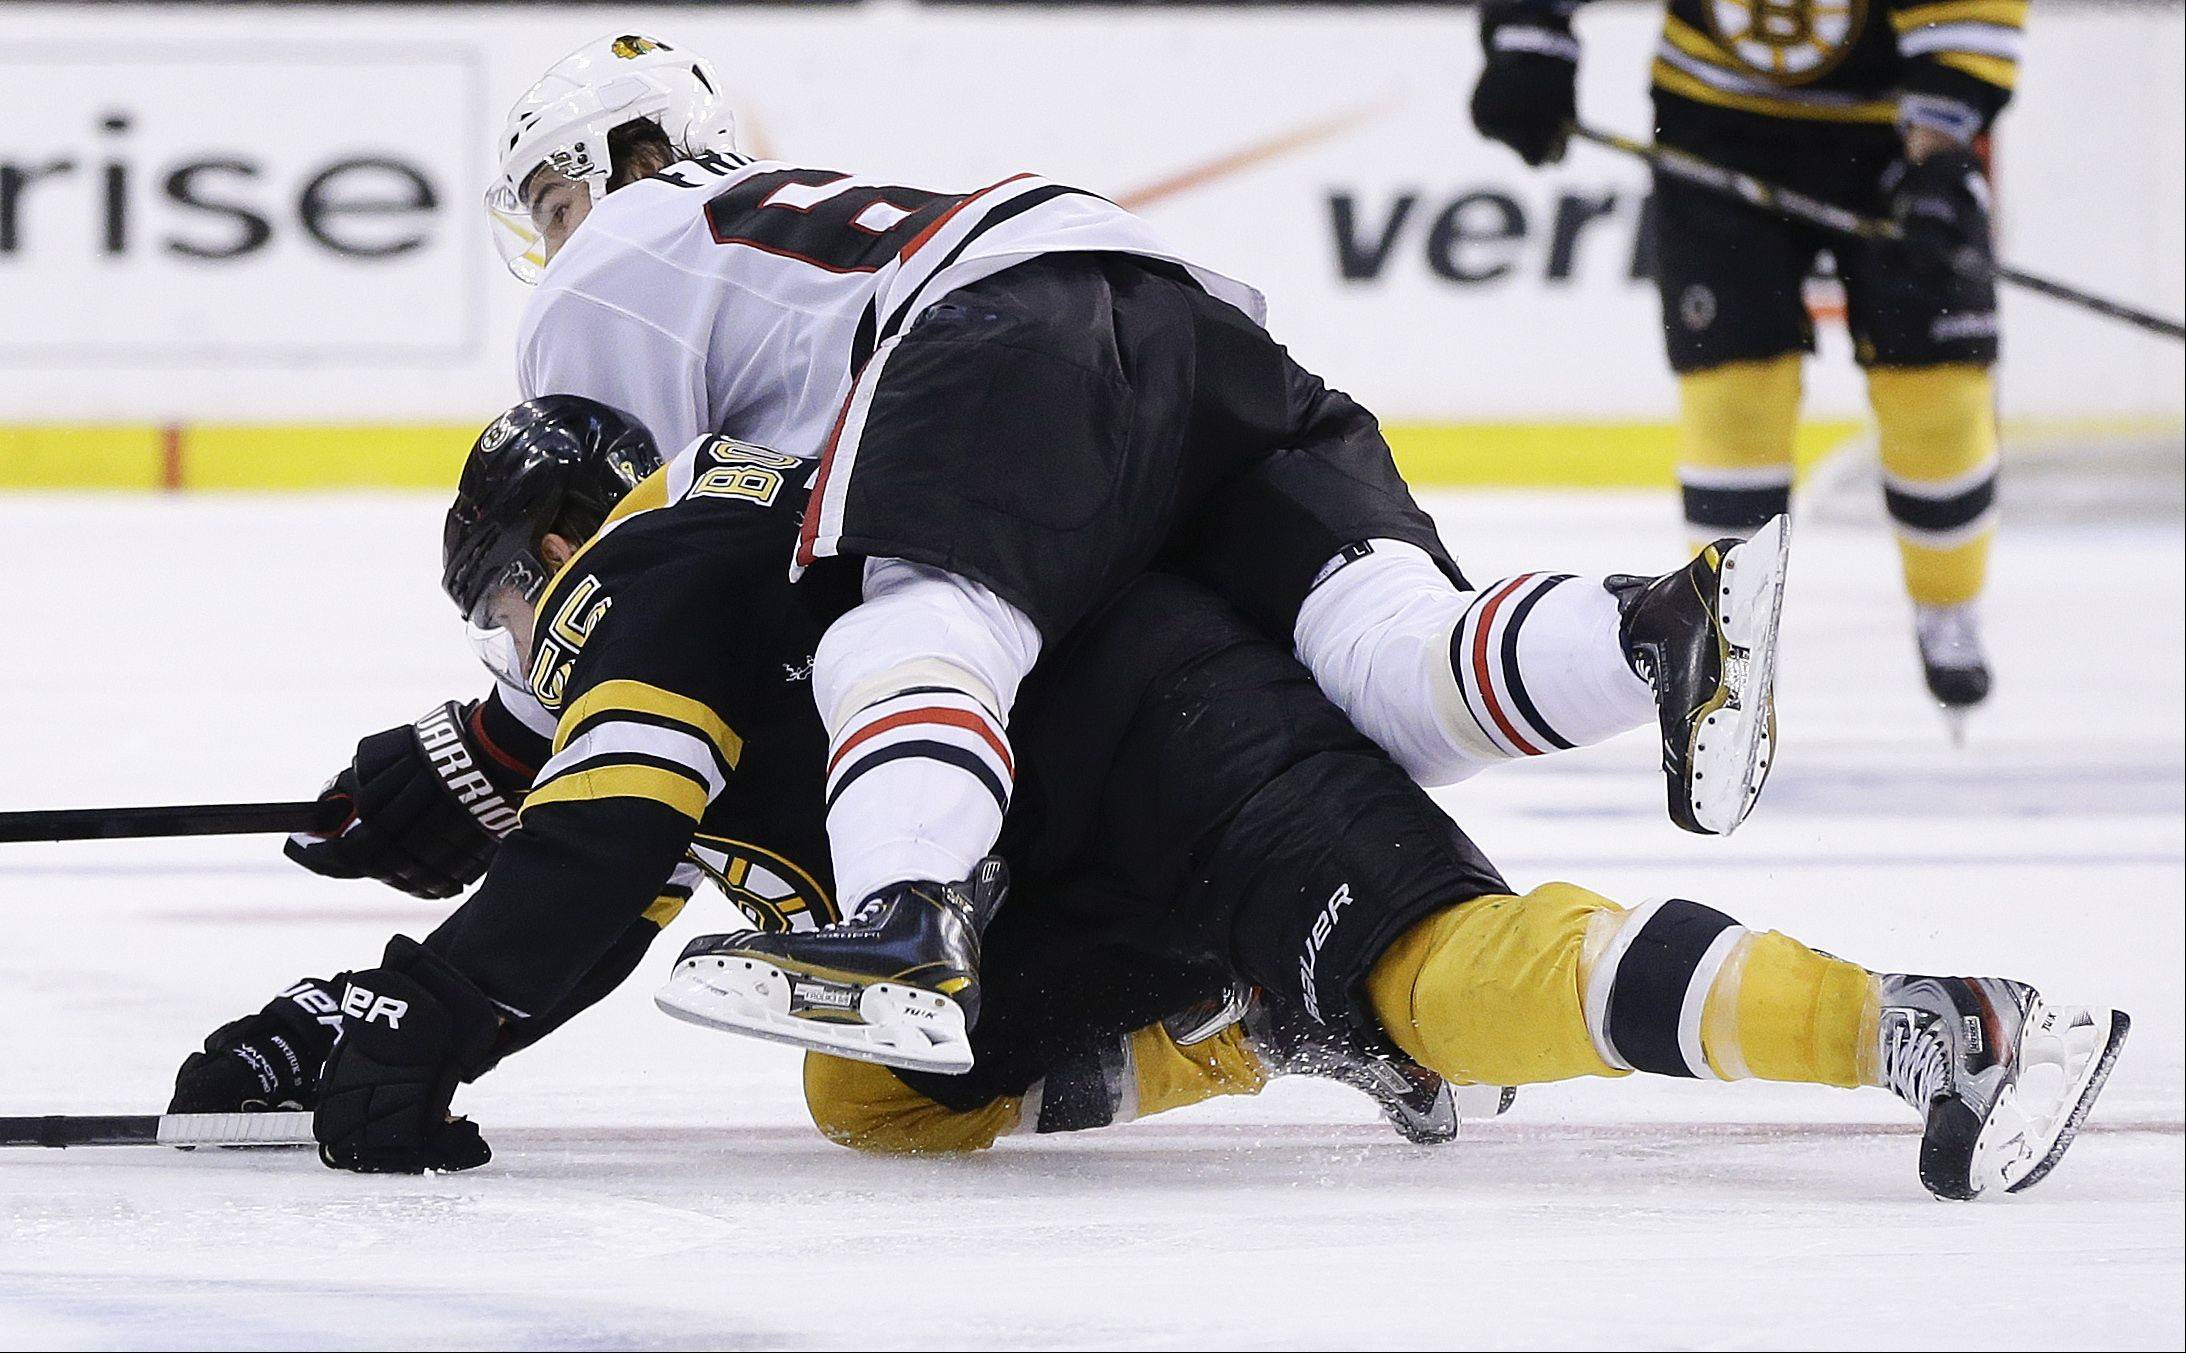 Chicago Blackhawks center Michael Frolik, top, of the Czech Republic, rides down Boston Bruins defenseman Johnny Boychuk (55) during the third period in Game 6 Monday in Boston.